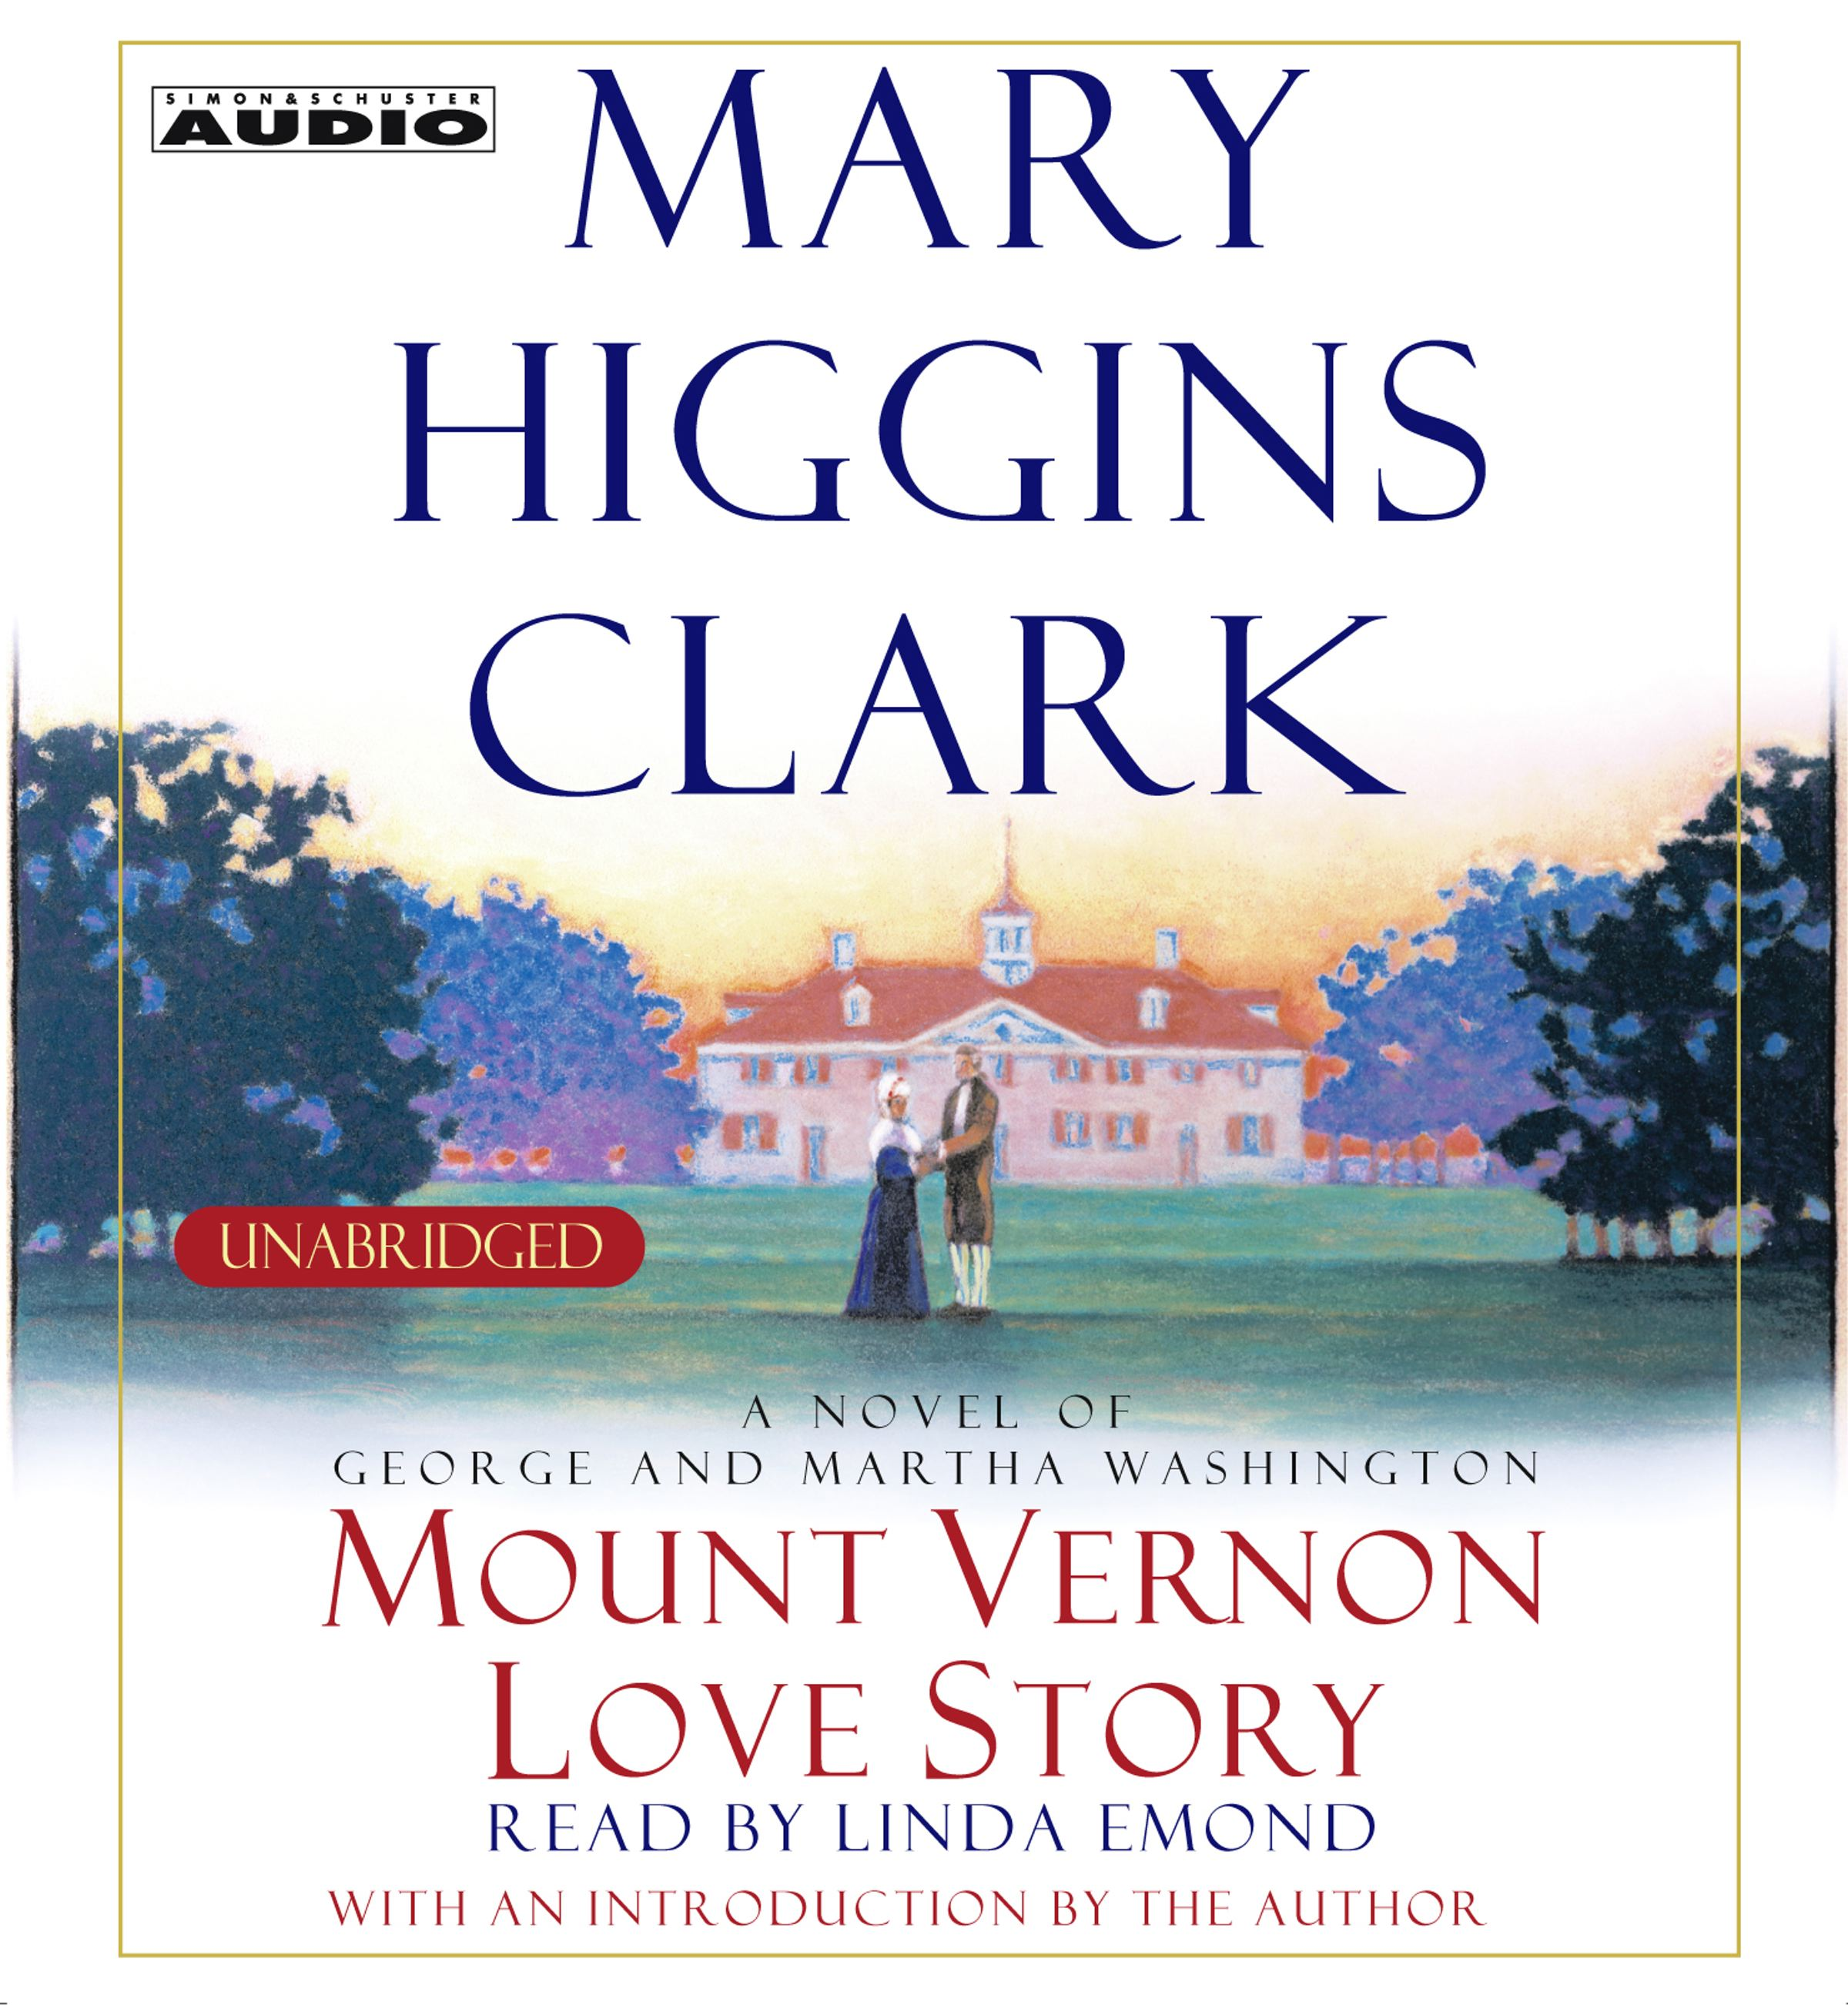 Mount-vernon-love-story-9780743582728_hr